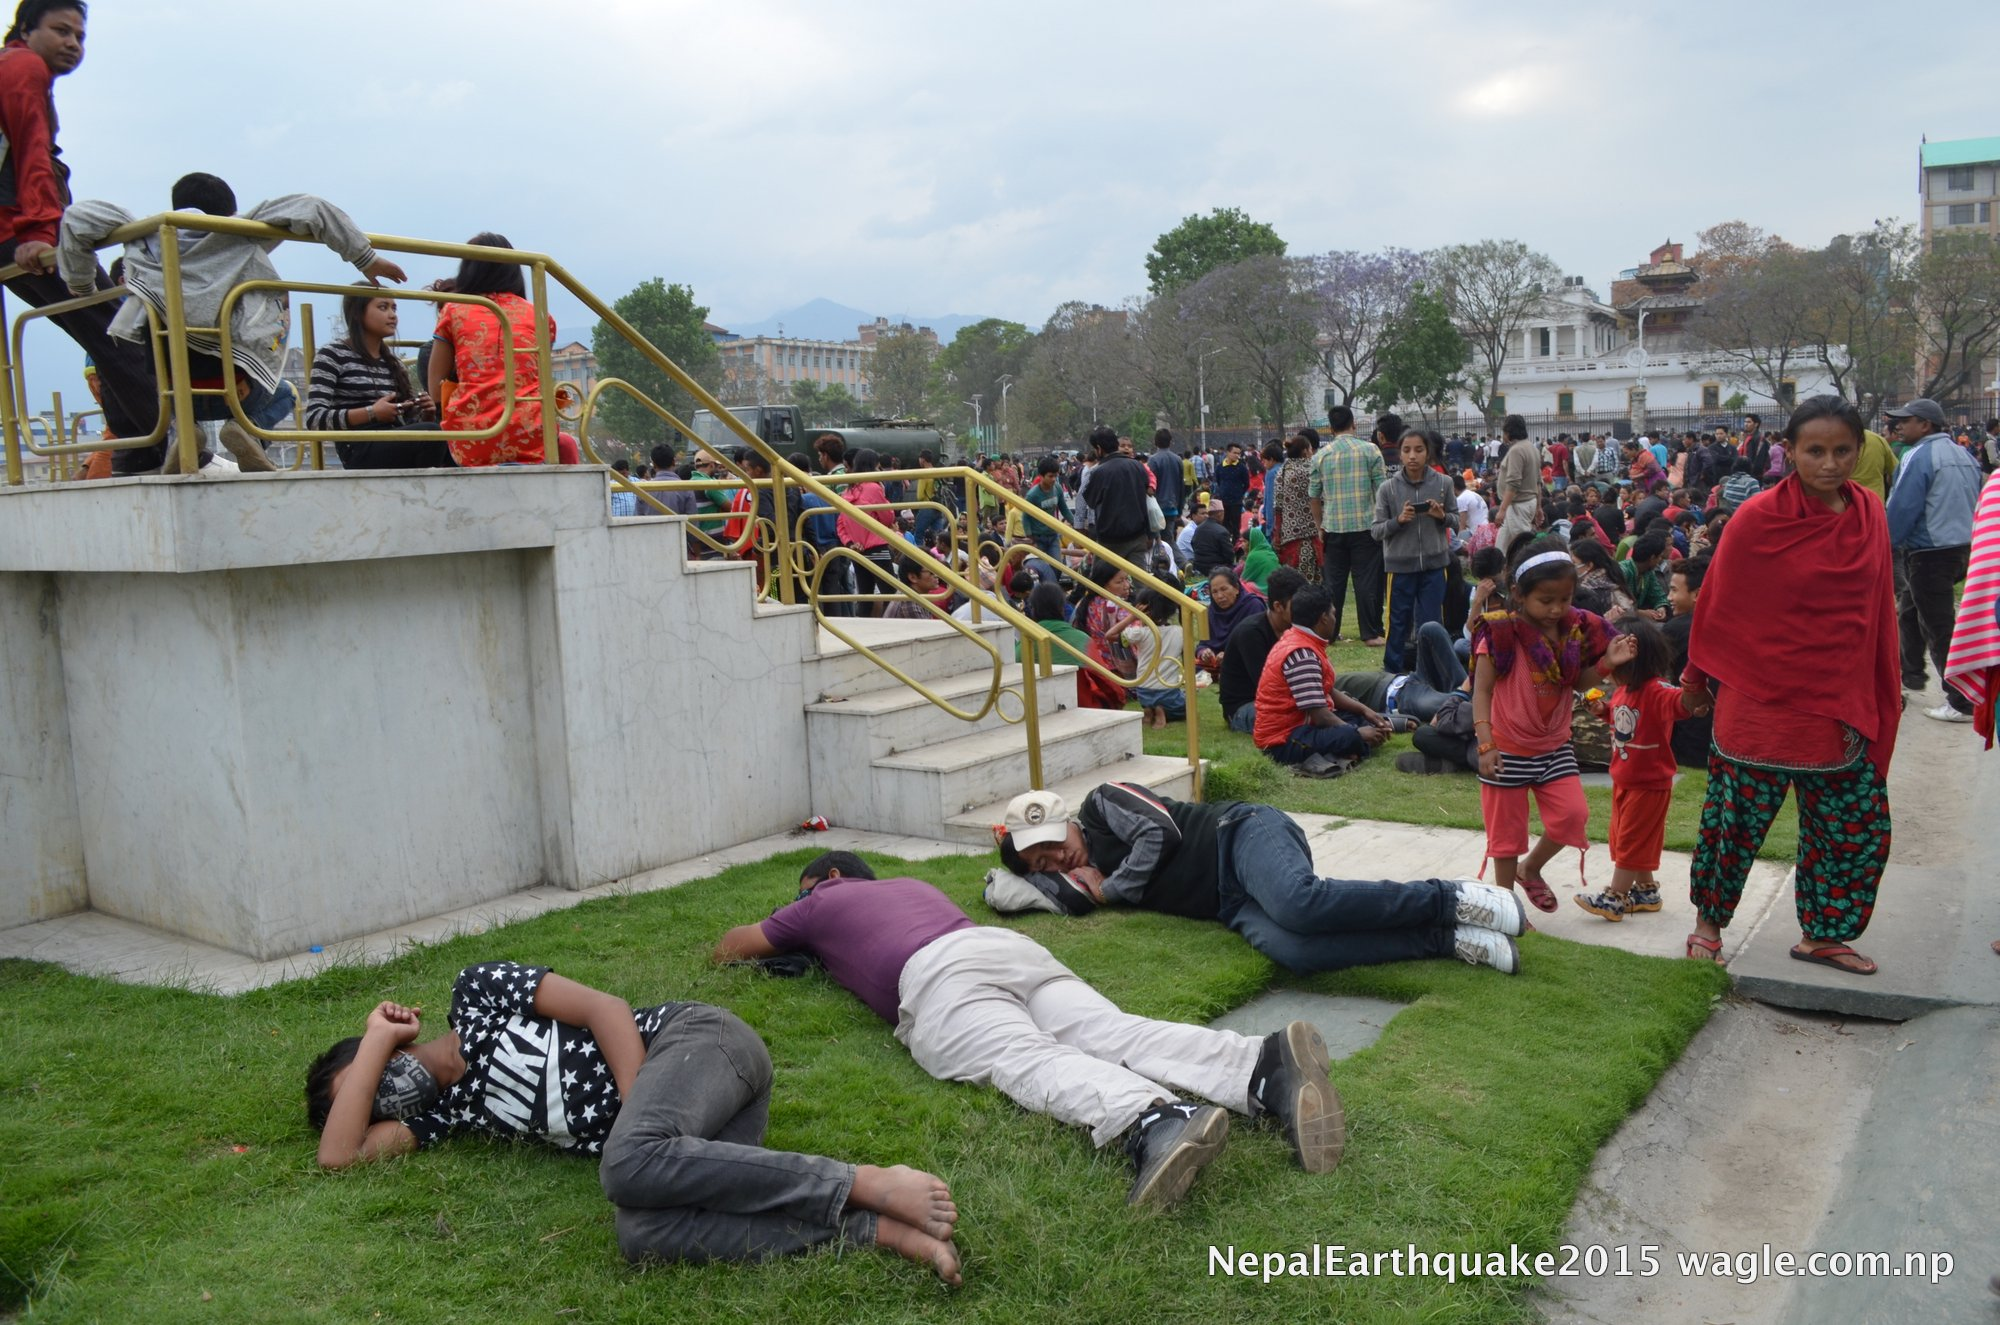 The restricted area of Tundikhel's Military Area provided safe heaven to people terrified by the earthquake.